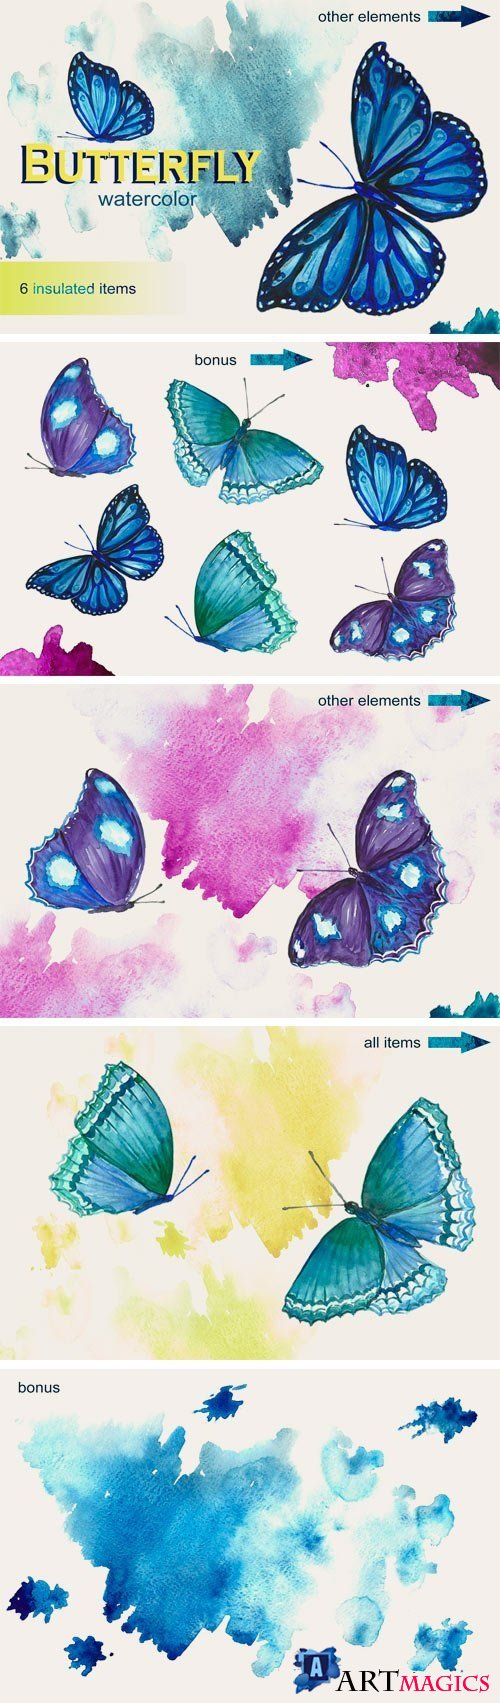 Watercolor Butterflies - 2271148